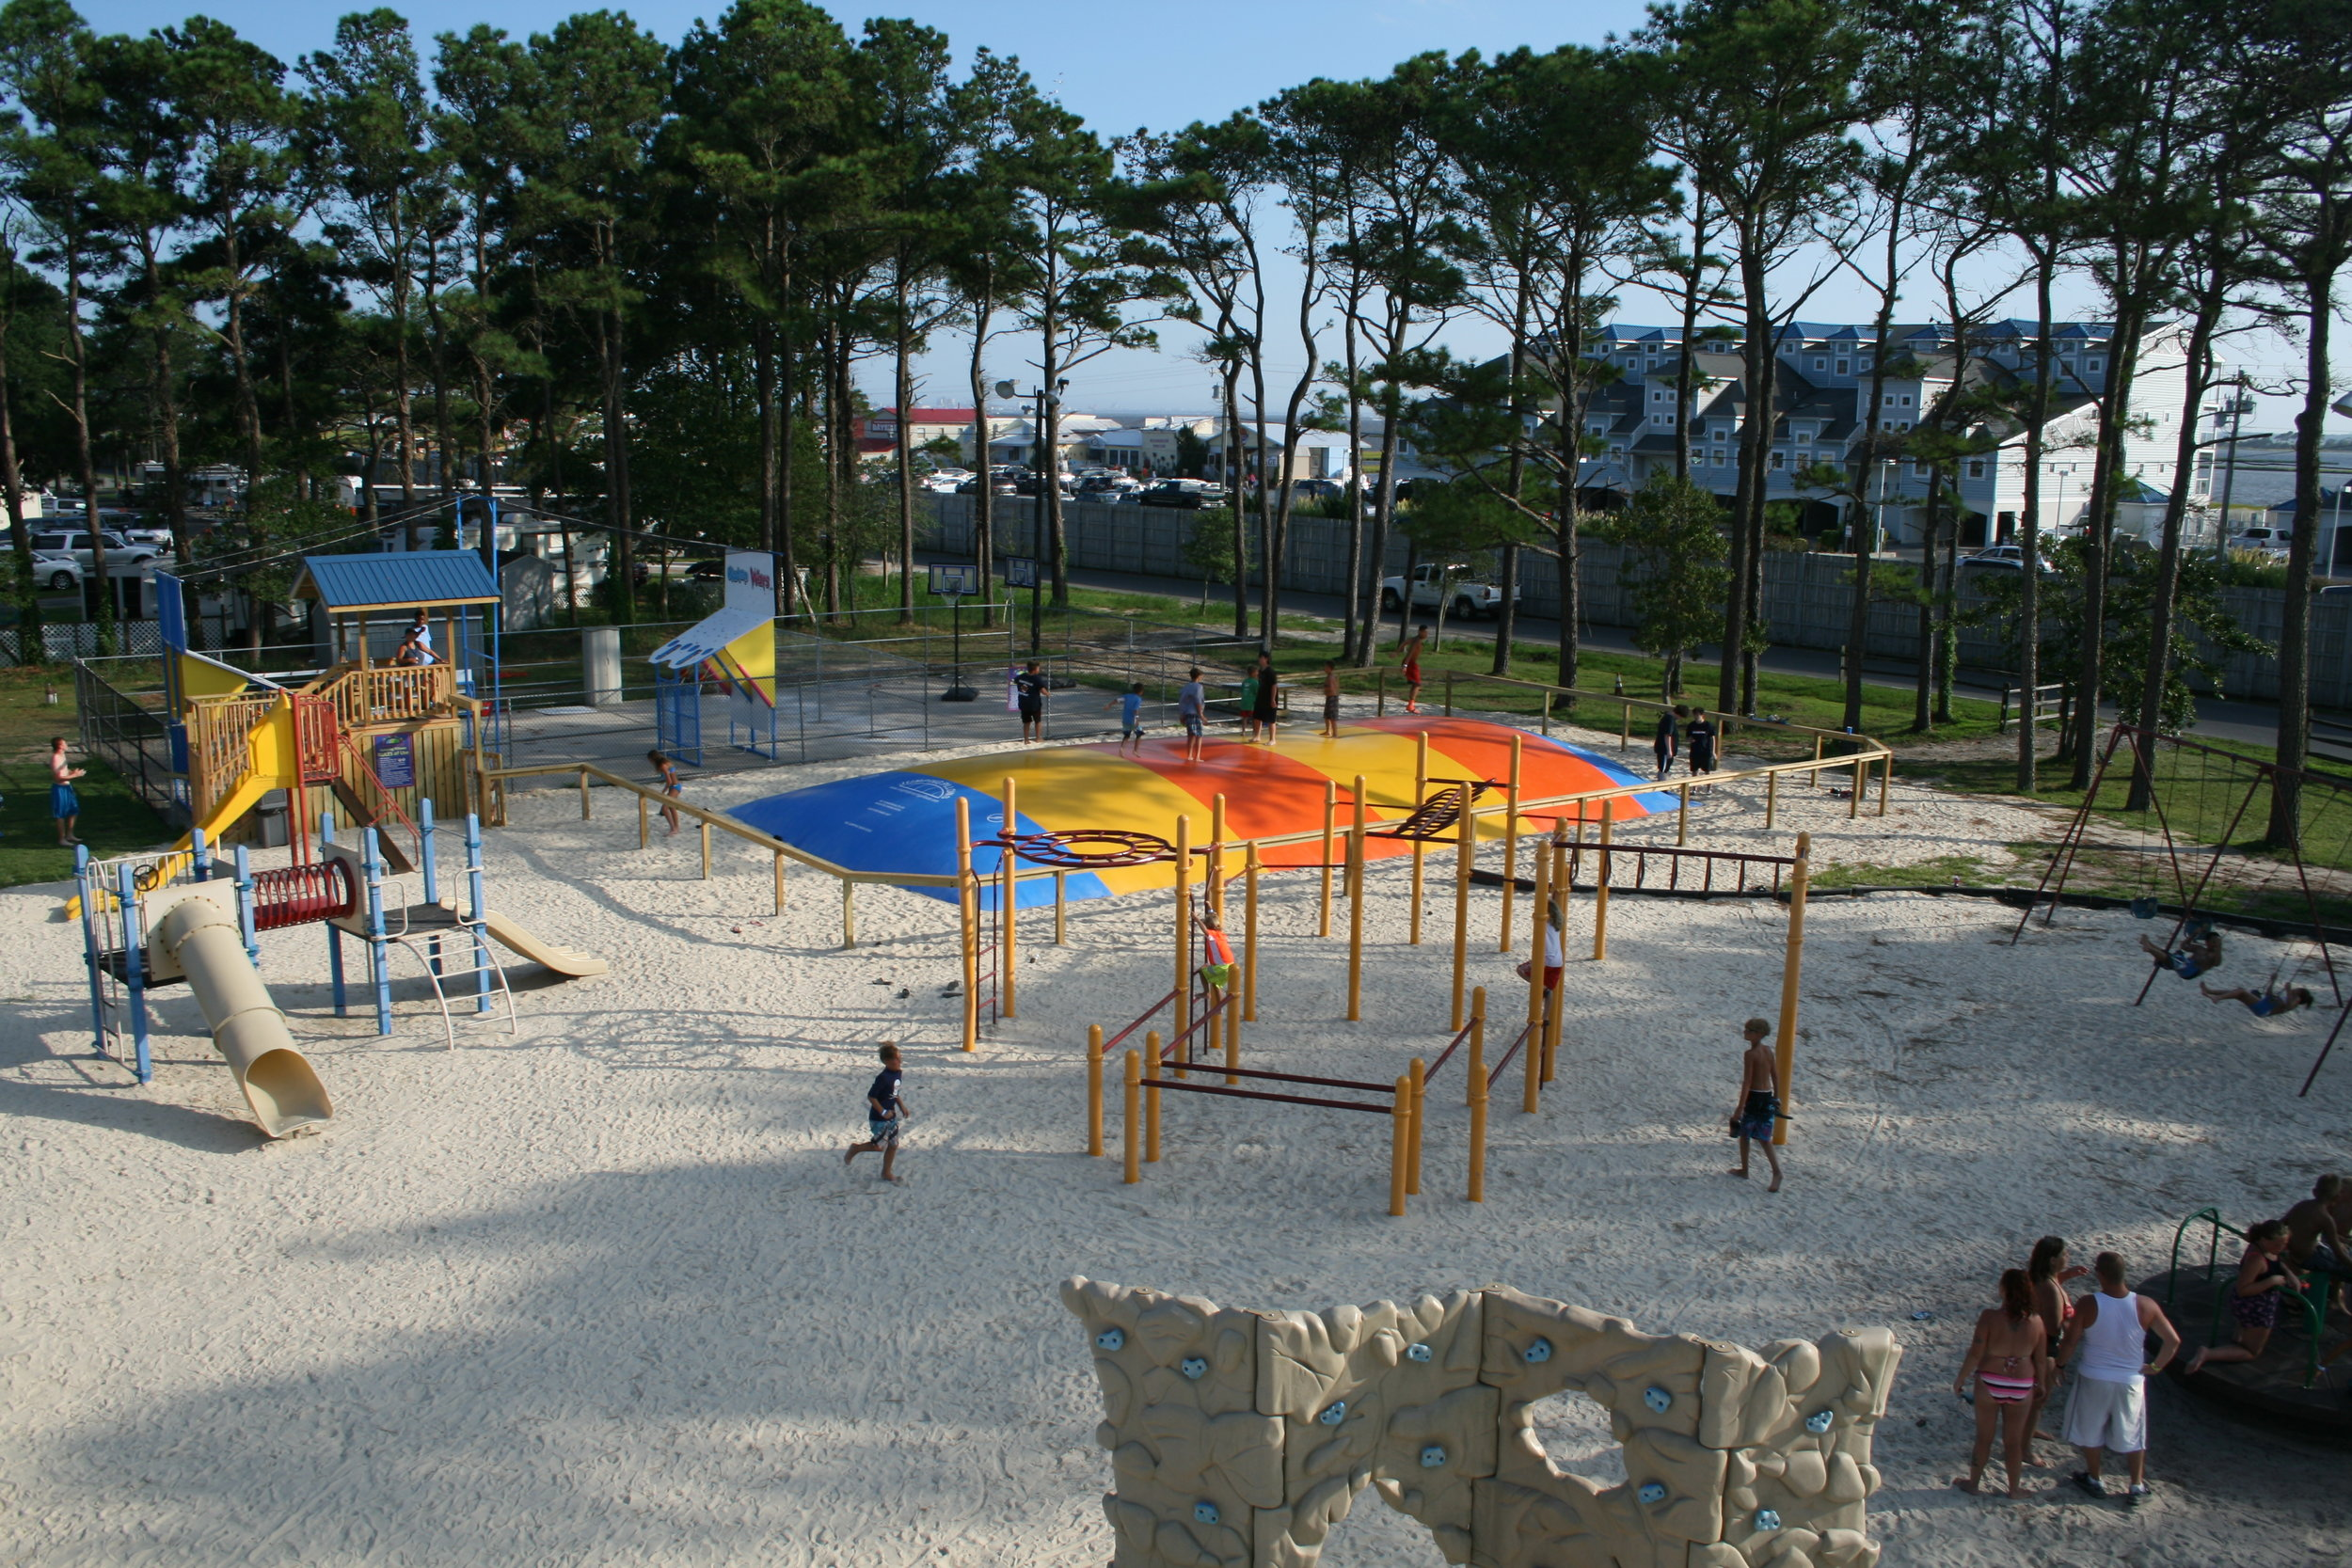 Play Here - Water wars, giant jumping pillow, lighted basketball court, horseshoes, cornhole, playground, bike rentals & more!